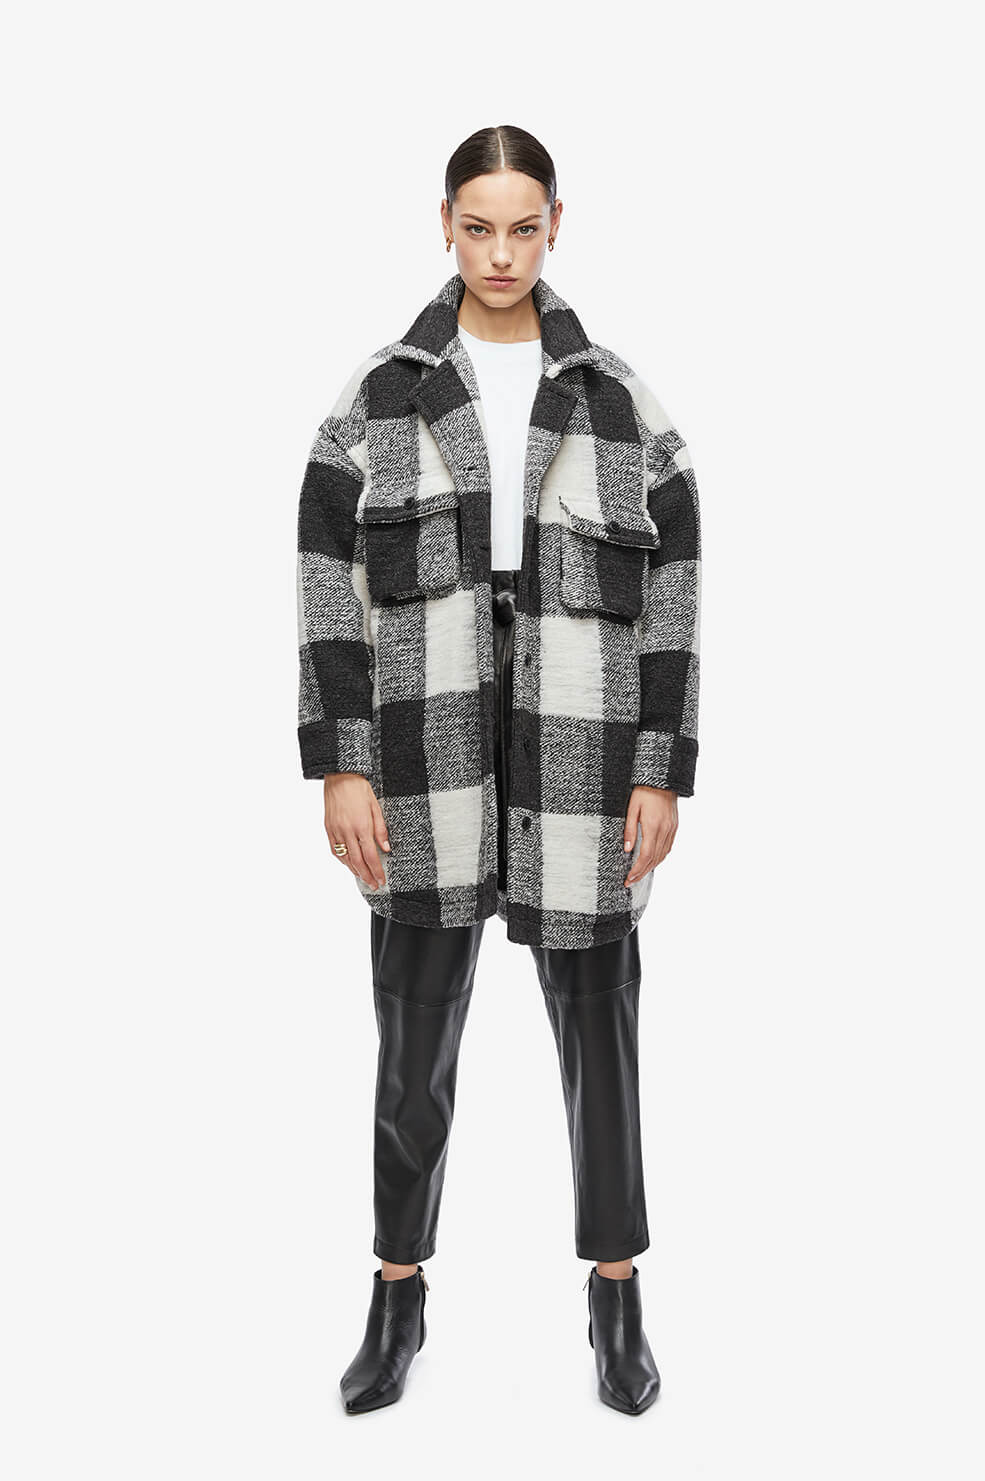 ANINE BING Maeve Jacket - Cream Buffalo Check